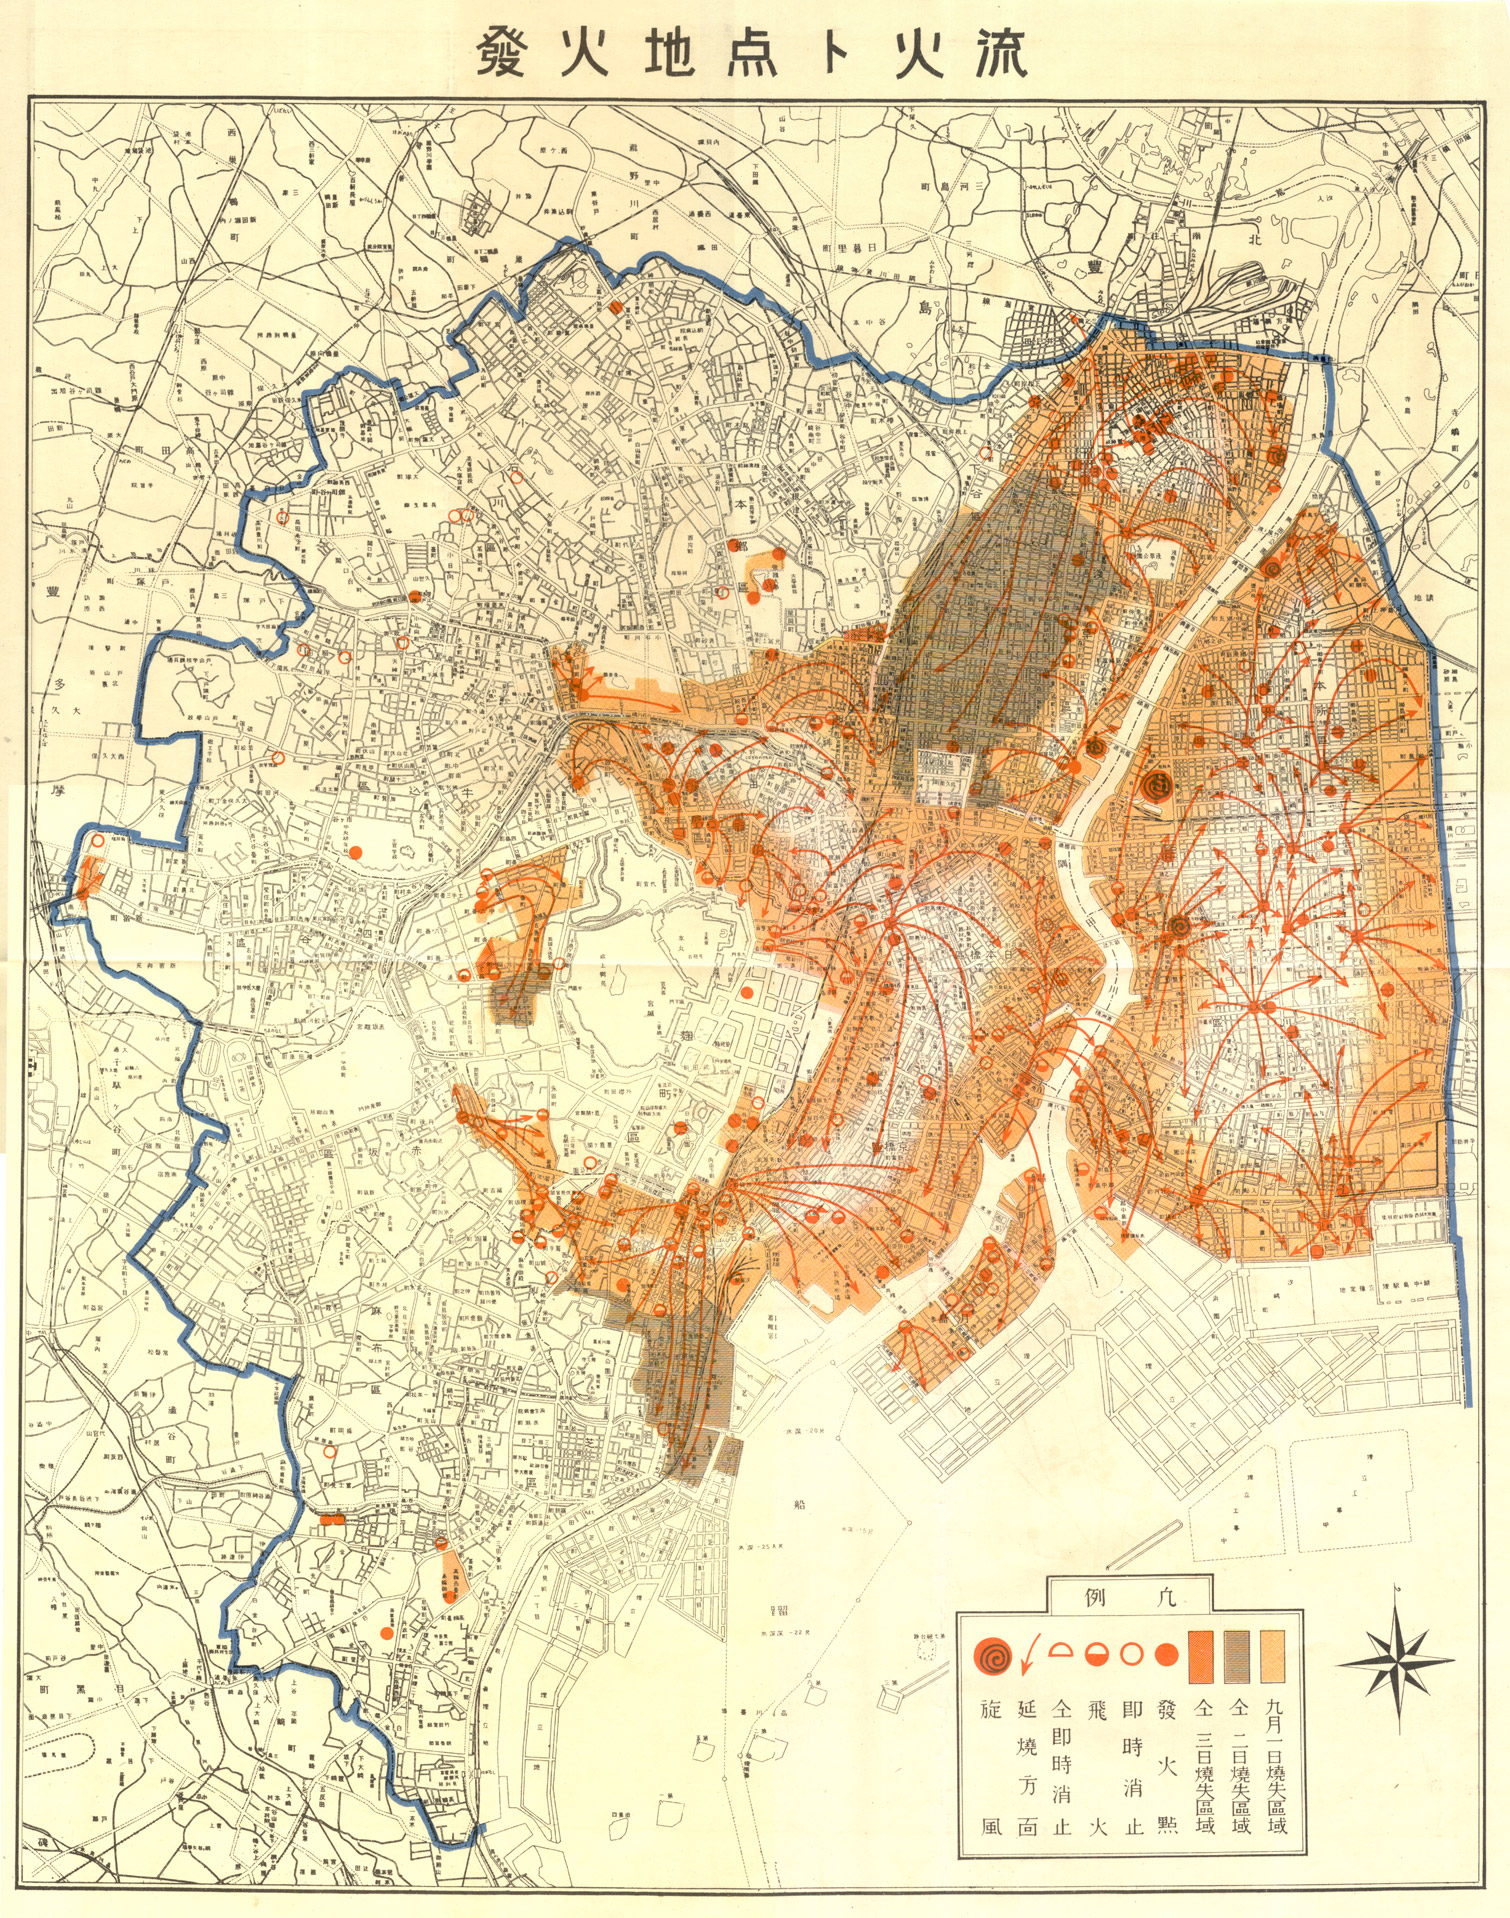 map indicating the areas burned on 1 2 and 3 september 1923